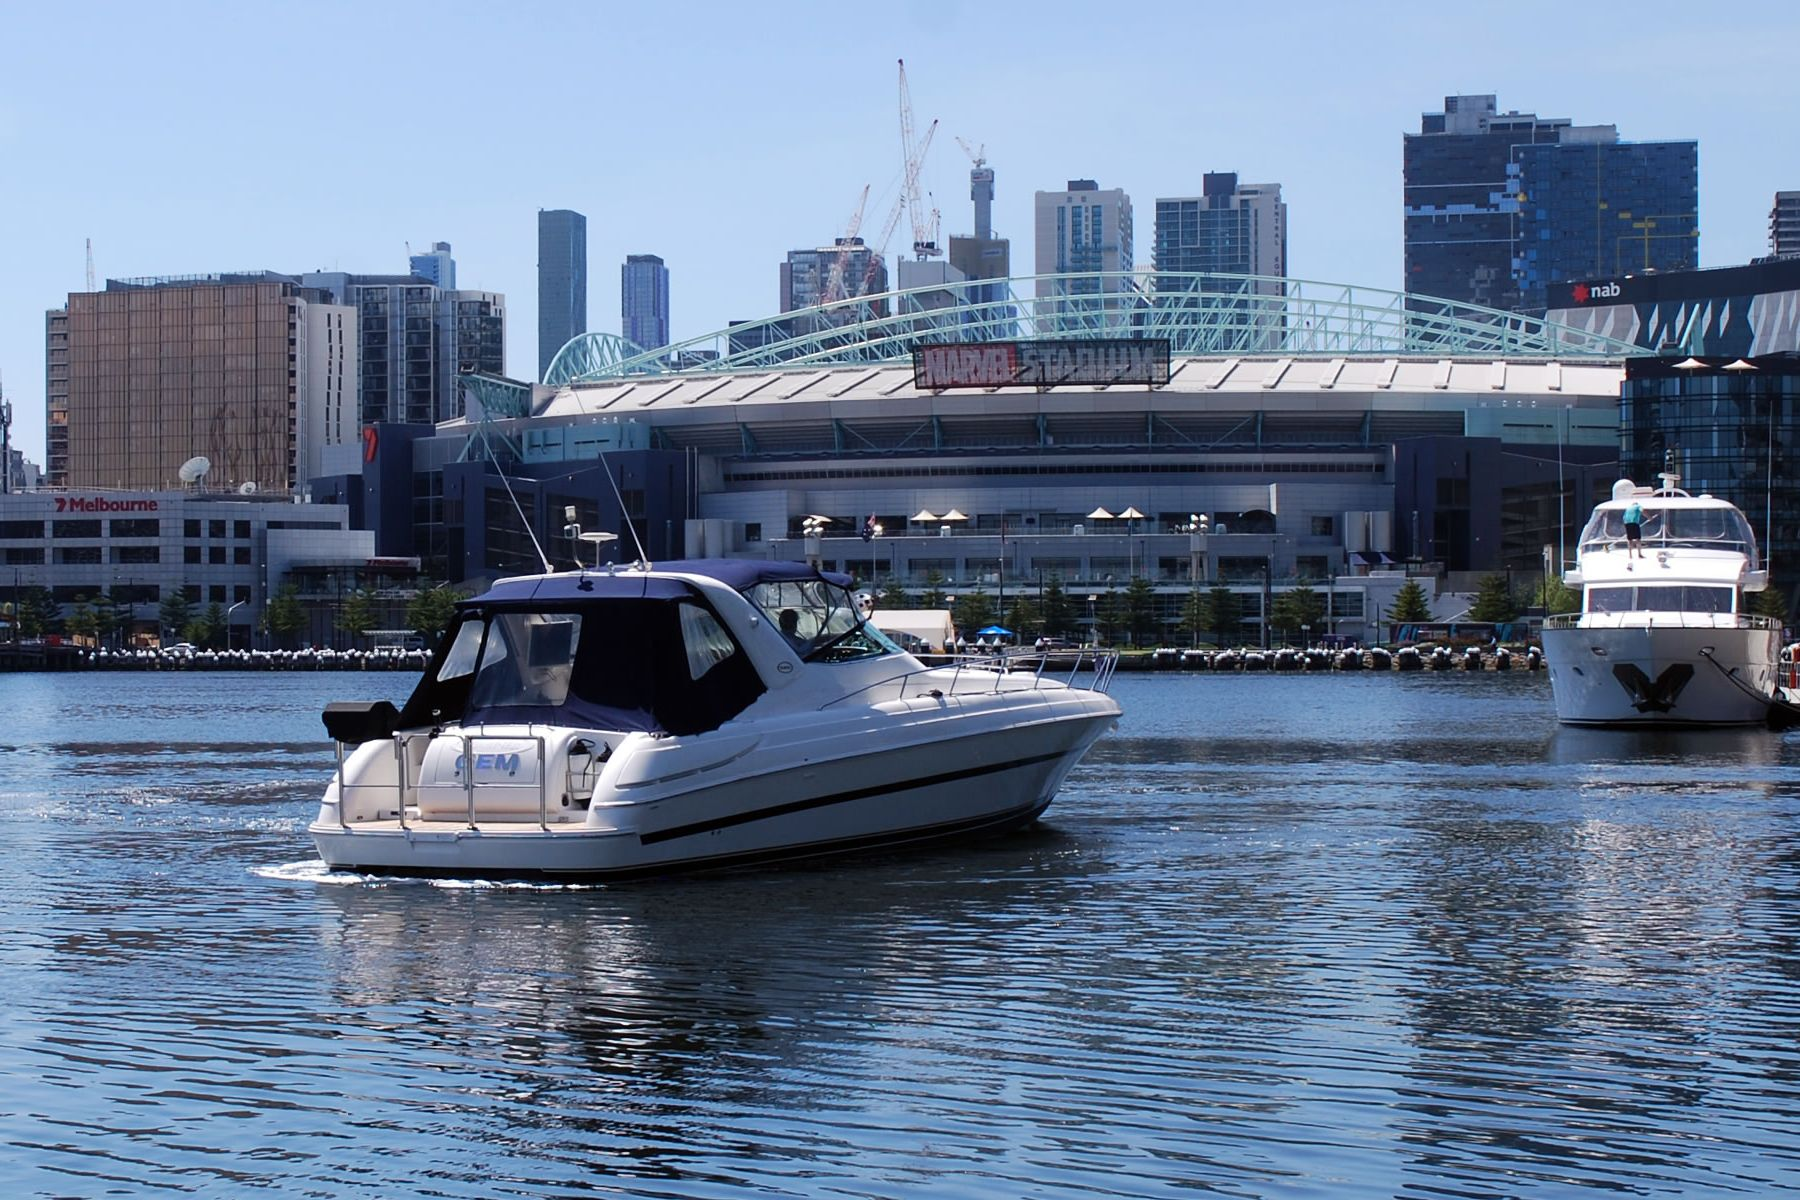 Melbourne Boat Sales located in Docklands